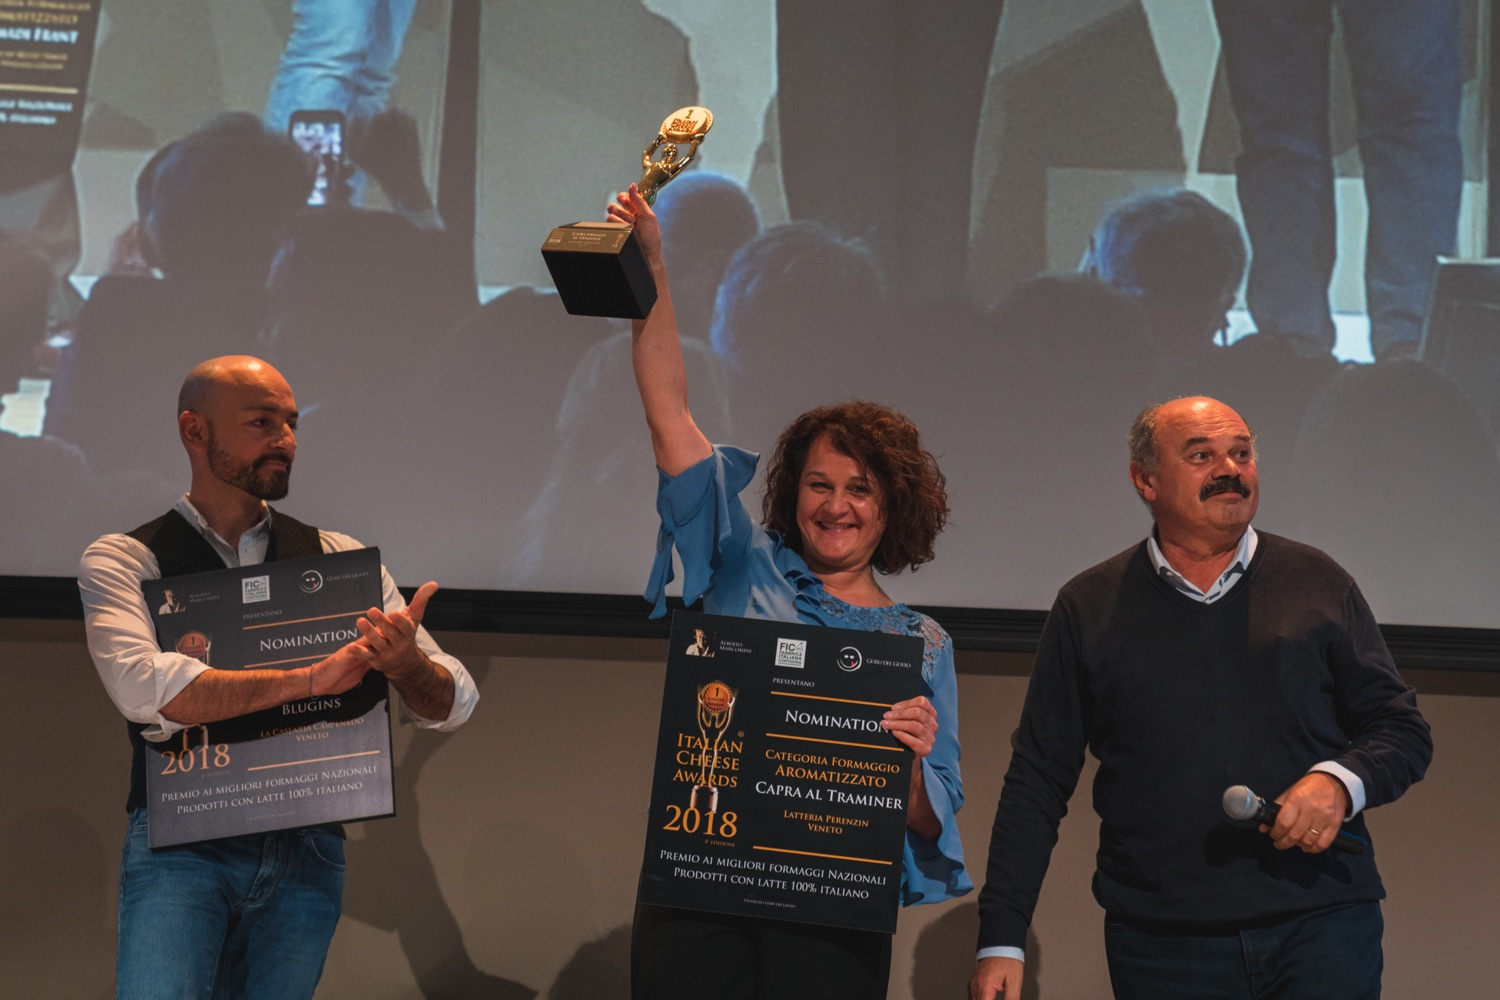 La Latteria Perenzin vince l'Italian Cheese Awards 2018